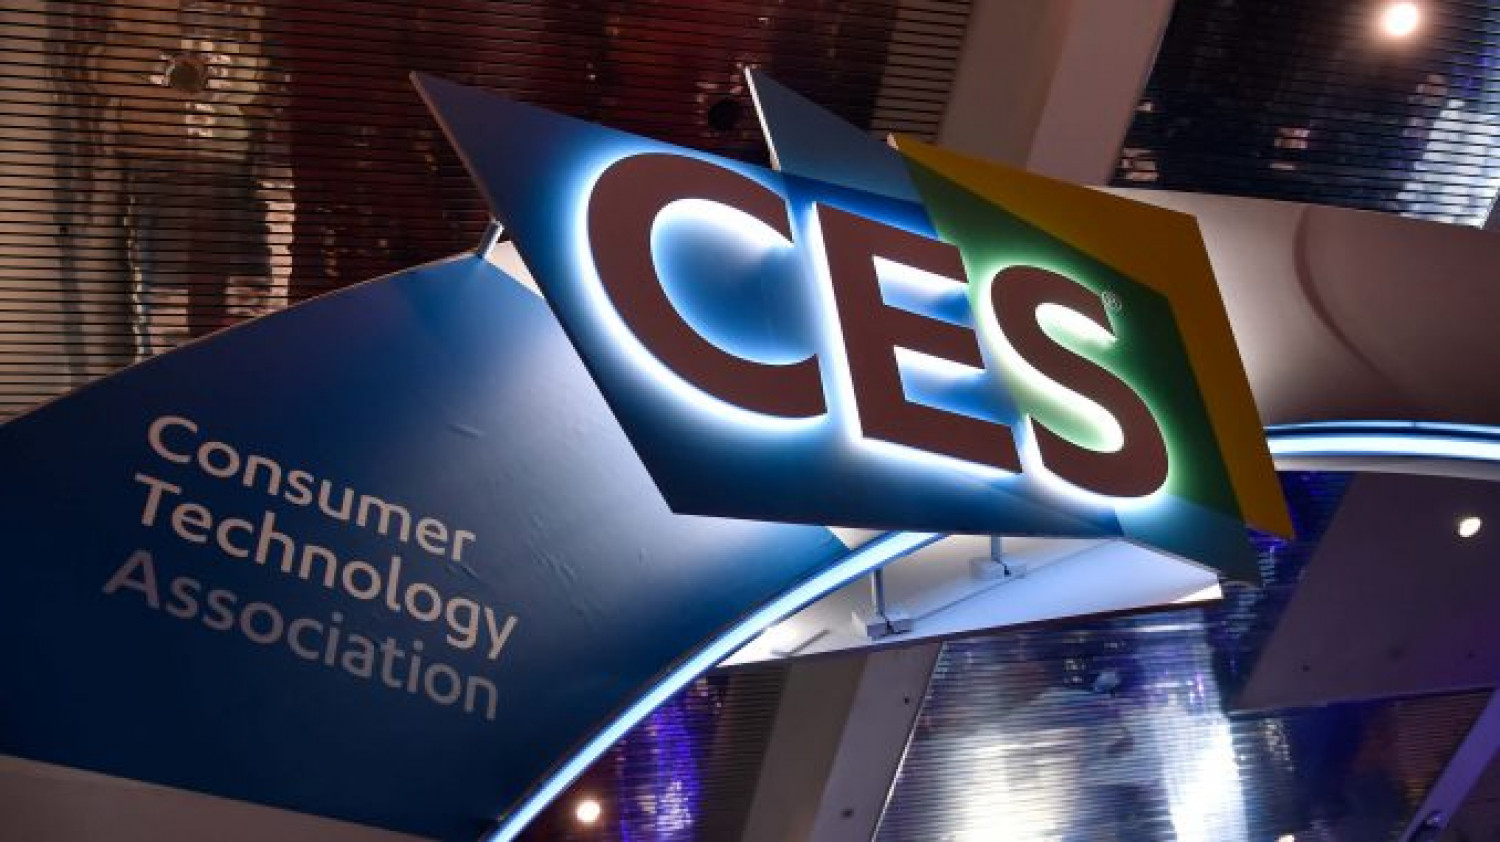 An Overview Of Consumer Electronics Show 2019 Held In Las Vegas Infographic